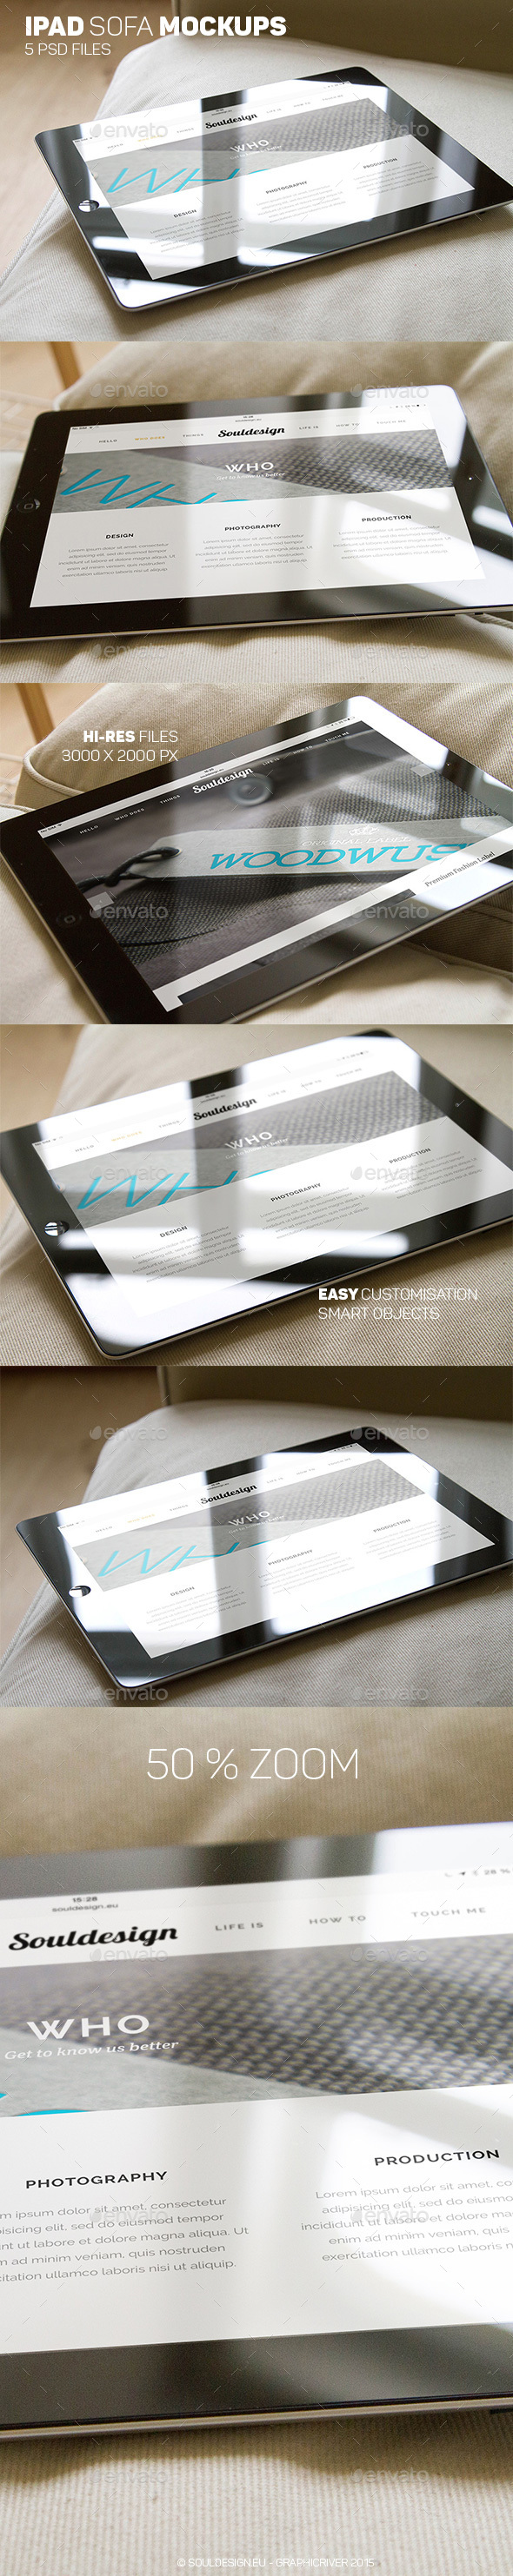 iPad Closeup Mockups Sofa - Mobile Displays